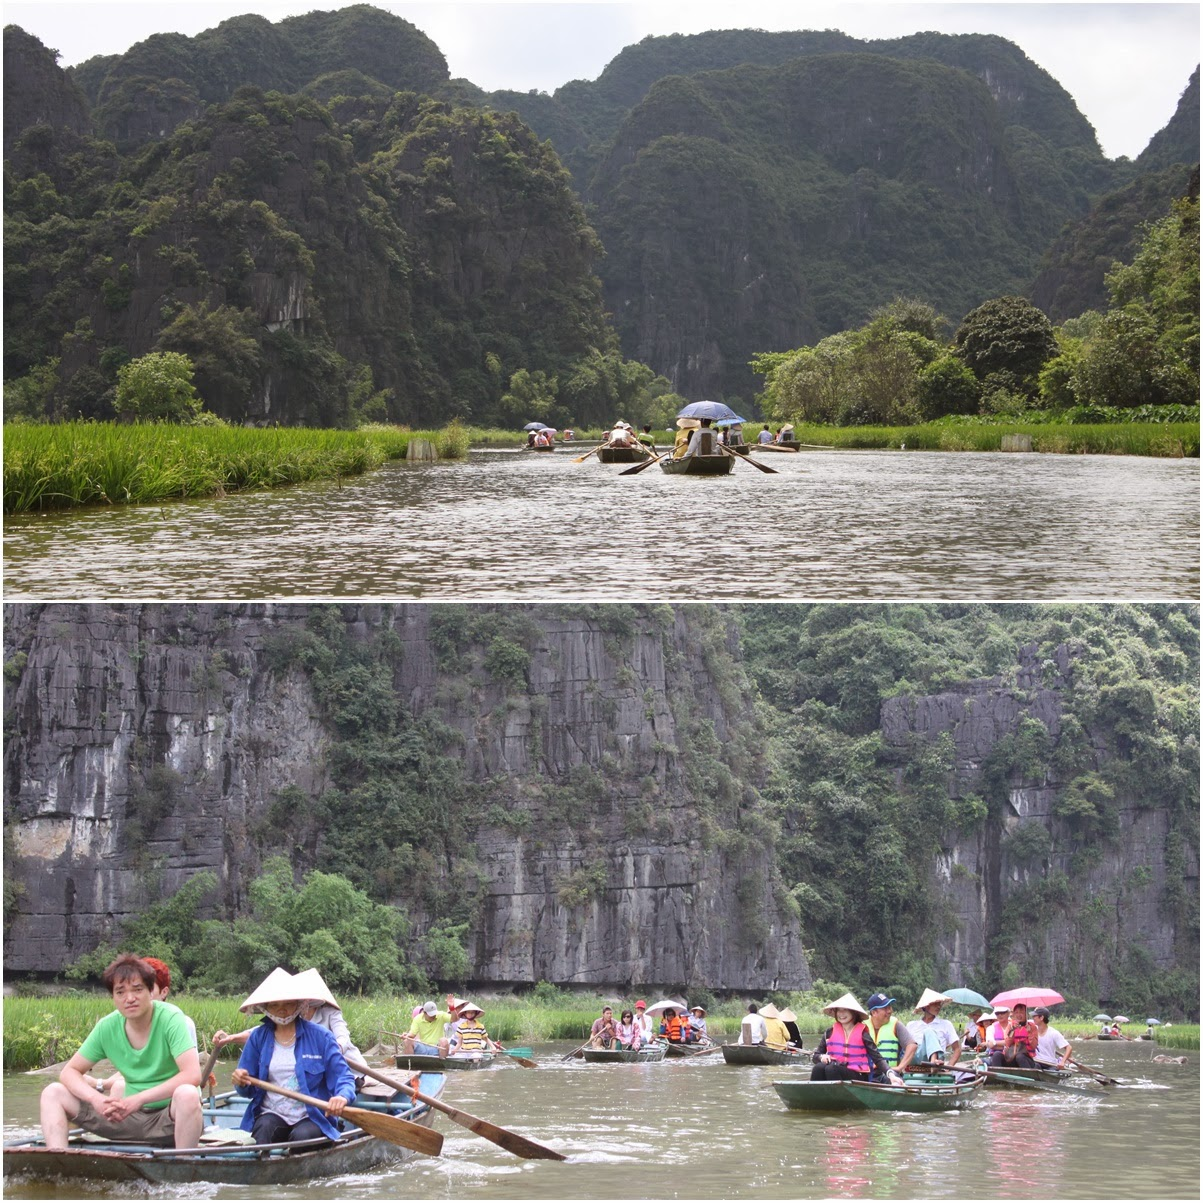 Heading to the second cave of Hang Giua cave after passing through the tiny hole of the first cave, cave Hang Ca at Tam Coc near the city of Ninh Bình in northern Vietnam